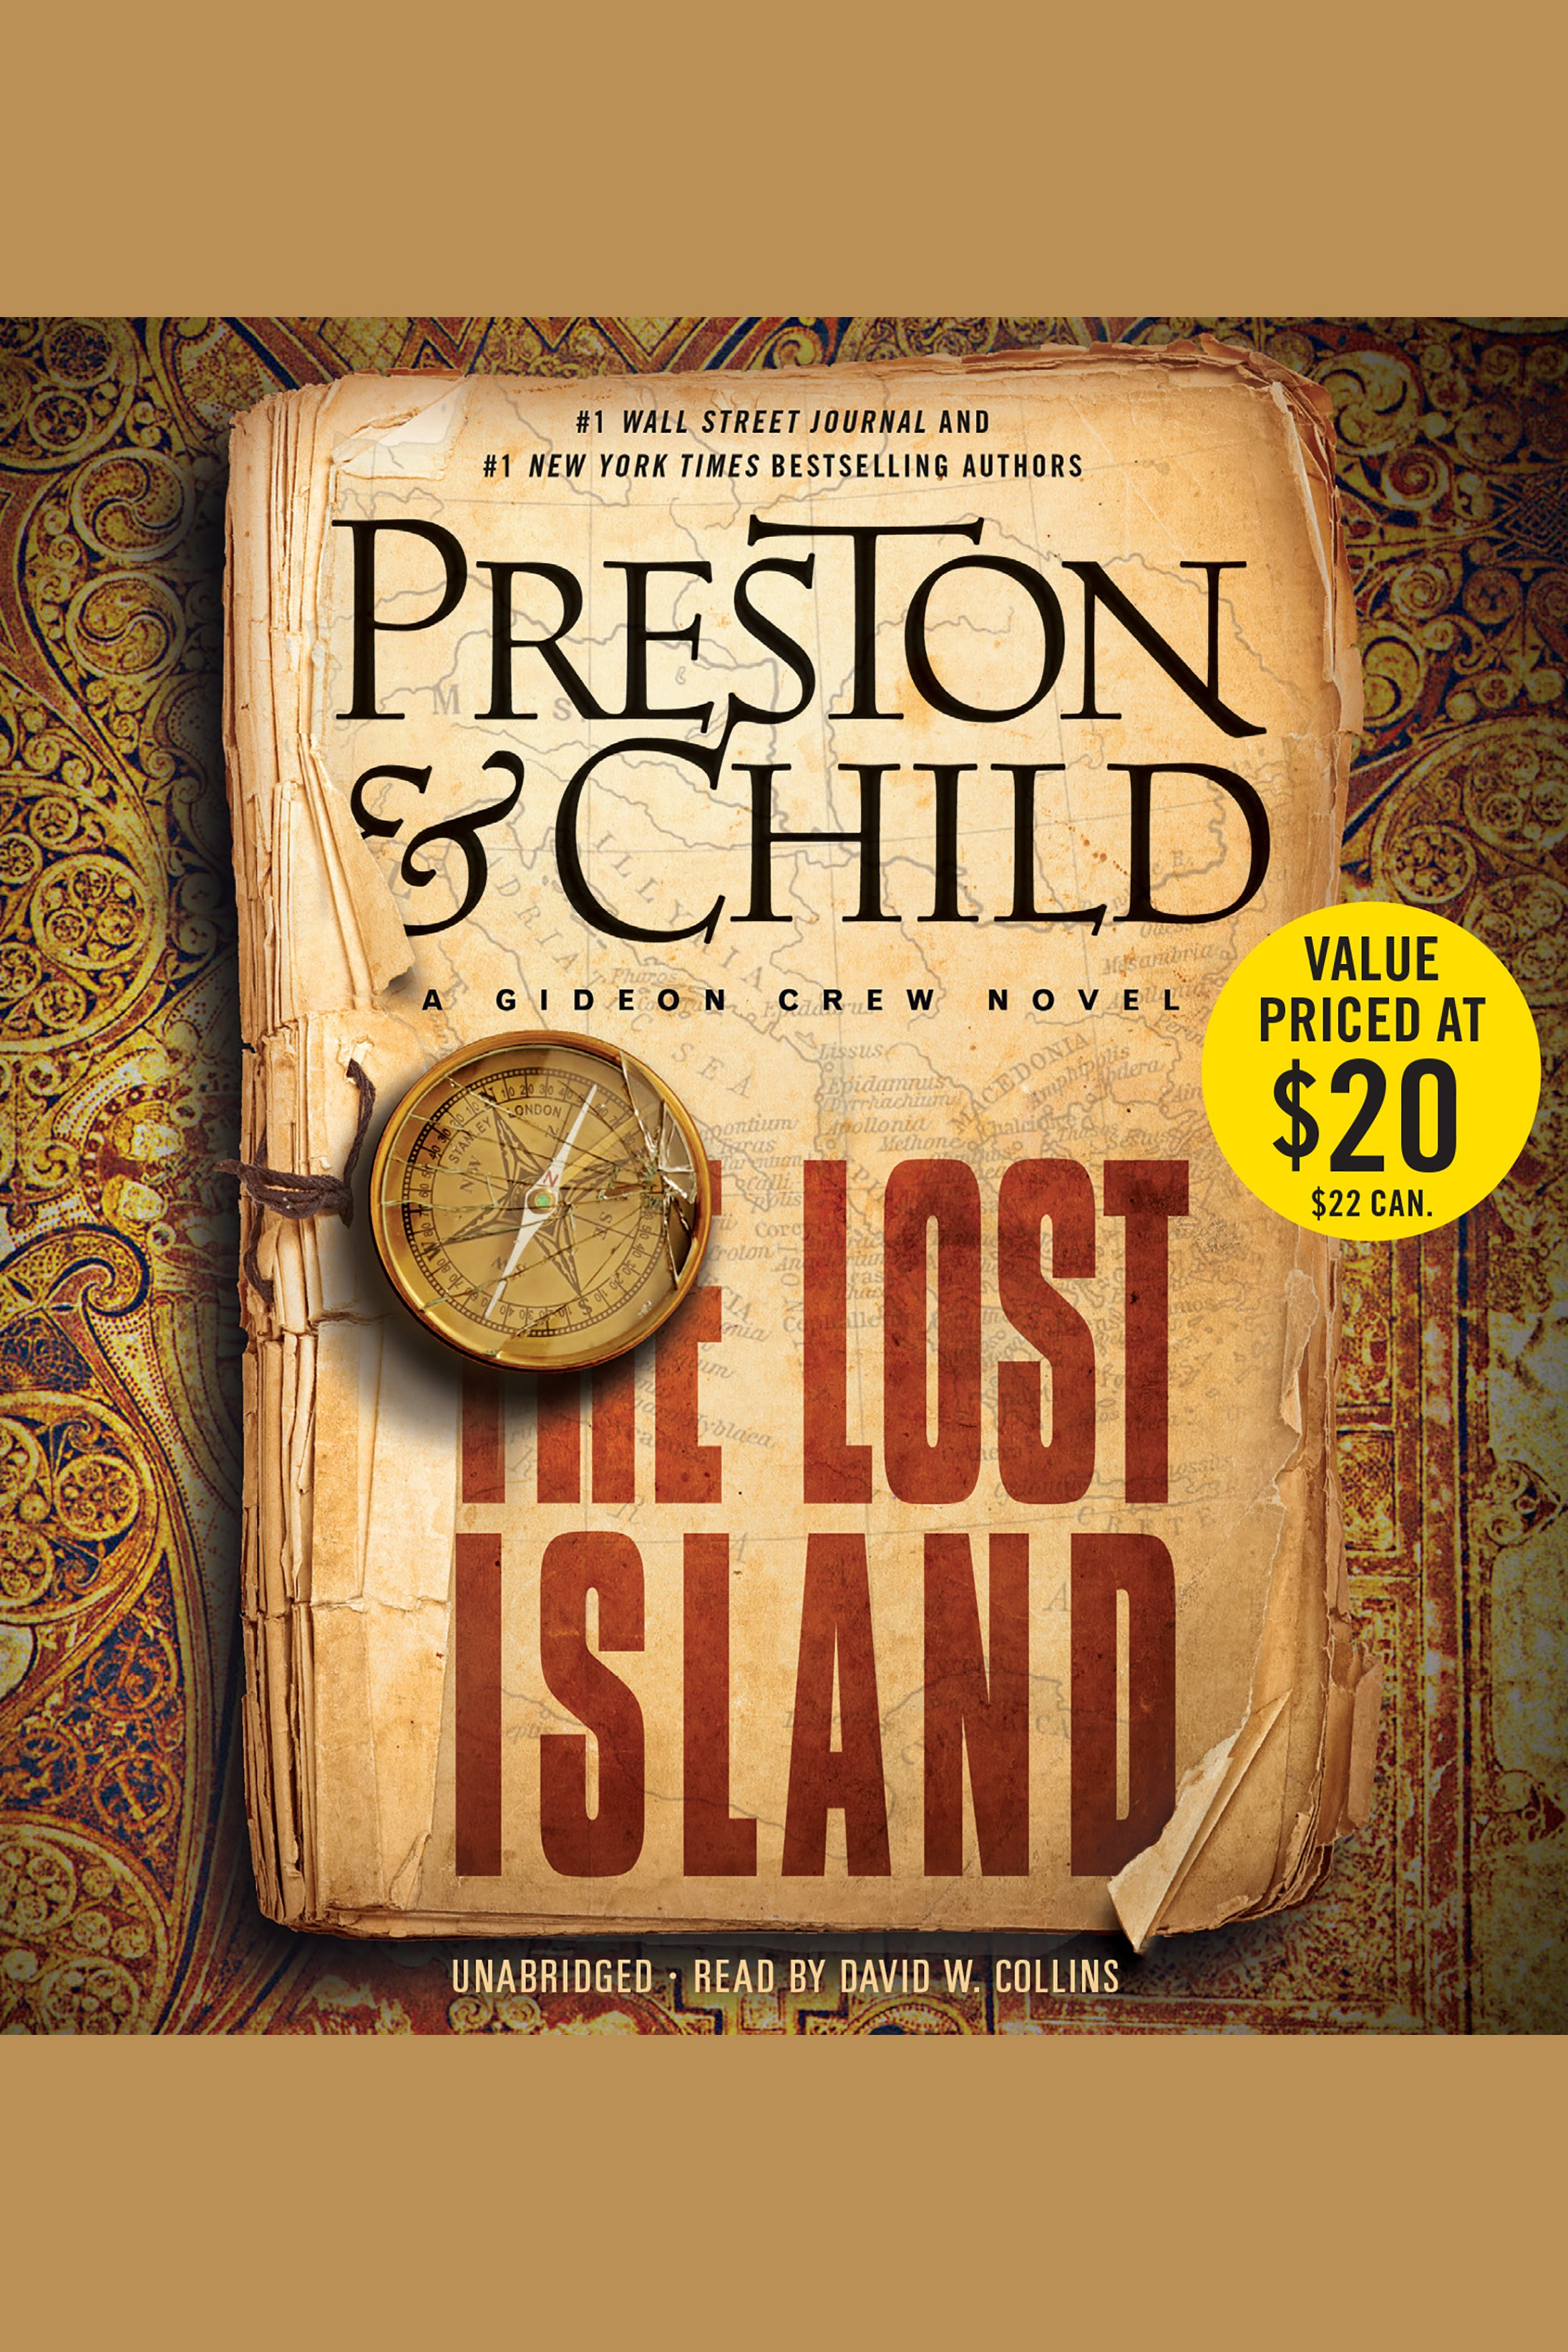 The lost island A Gideon Crew novel cover image